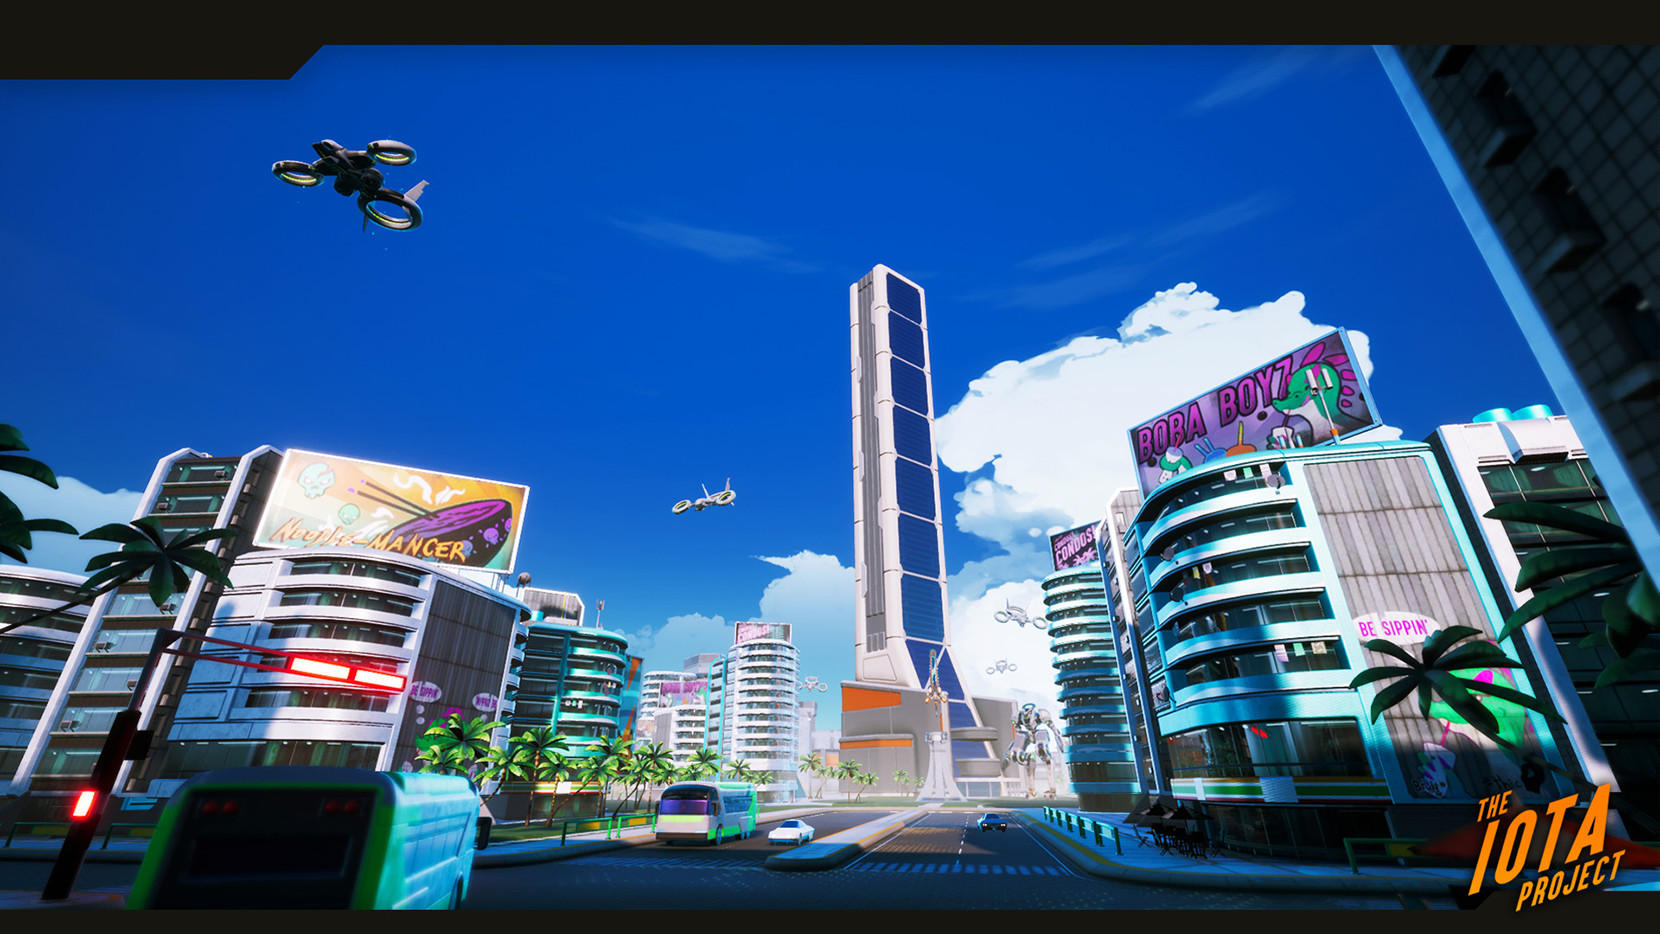 Some of the city renders of our alpha production. I produced the advertisements for the billboards and graffiti within the city along with many additional add-ons to the buildings.